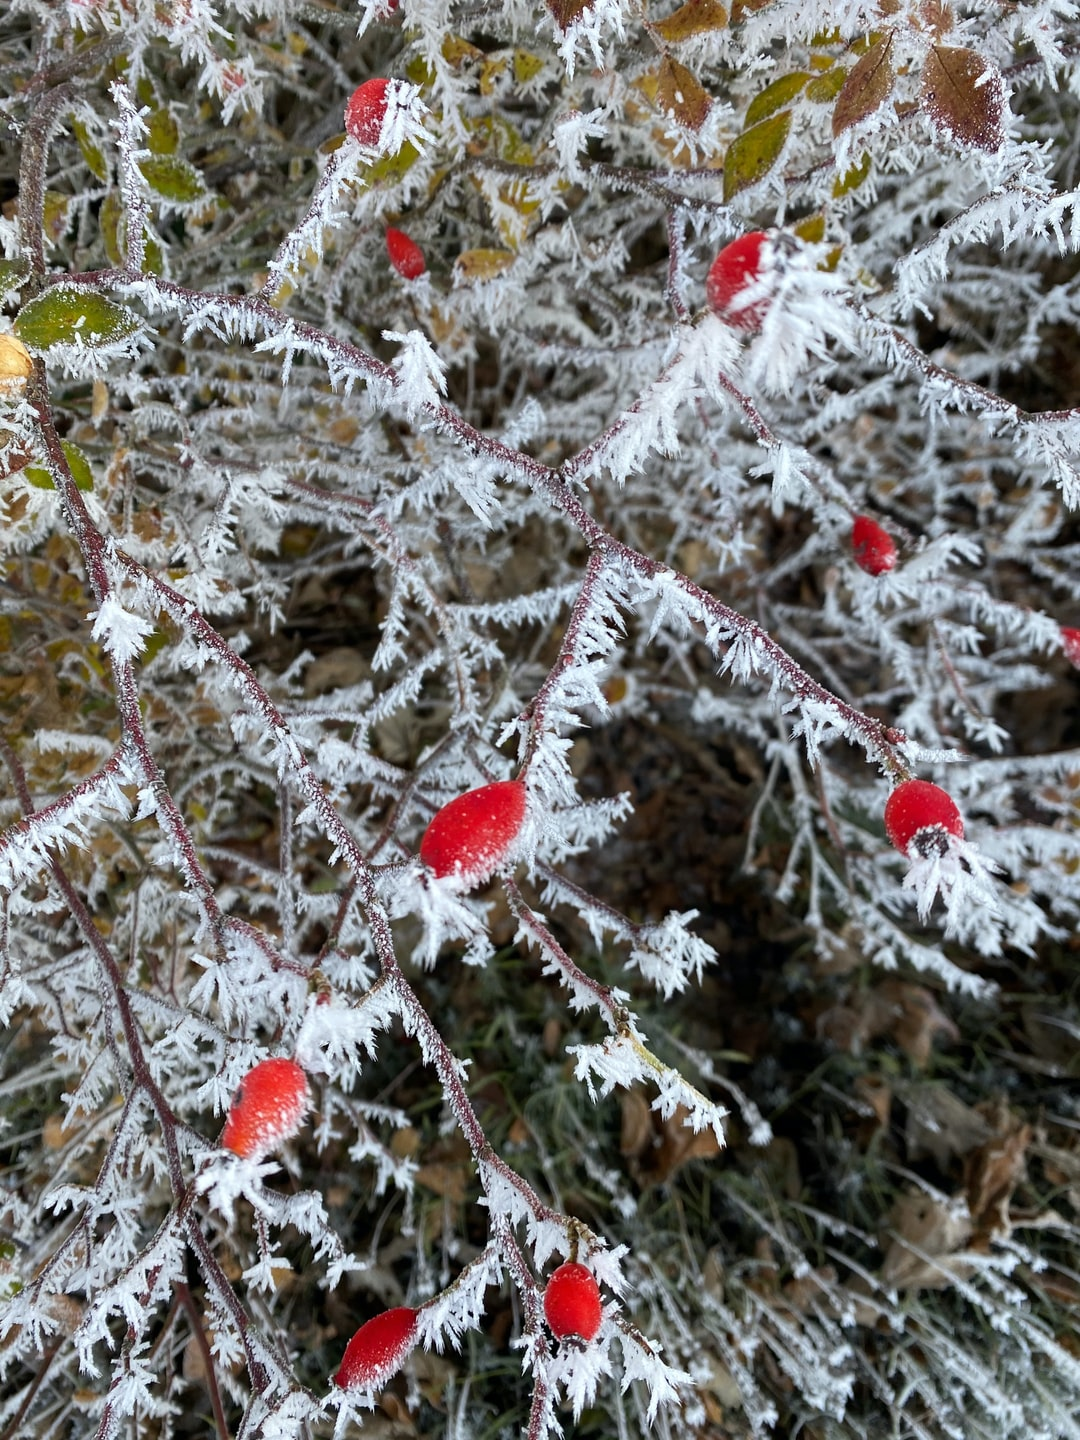 frosted green leaves on red berry bush, Kollnburg, Bavarian forest